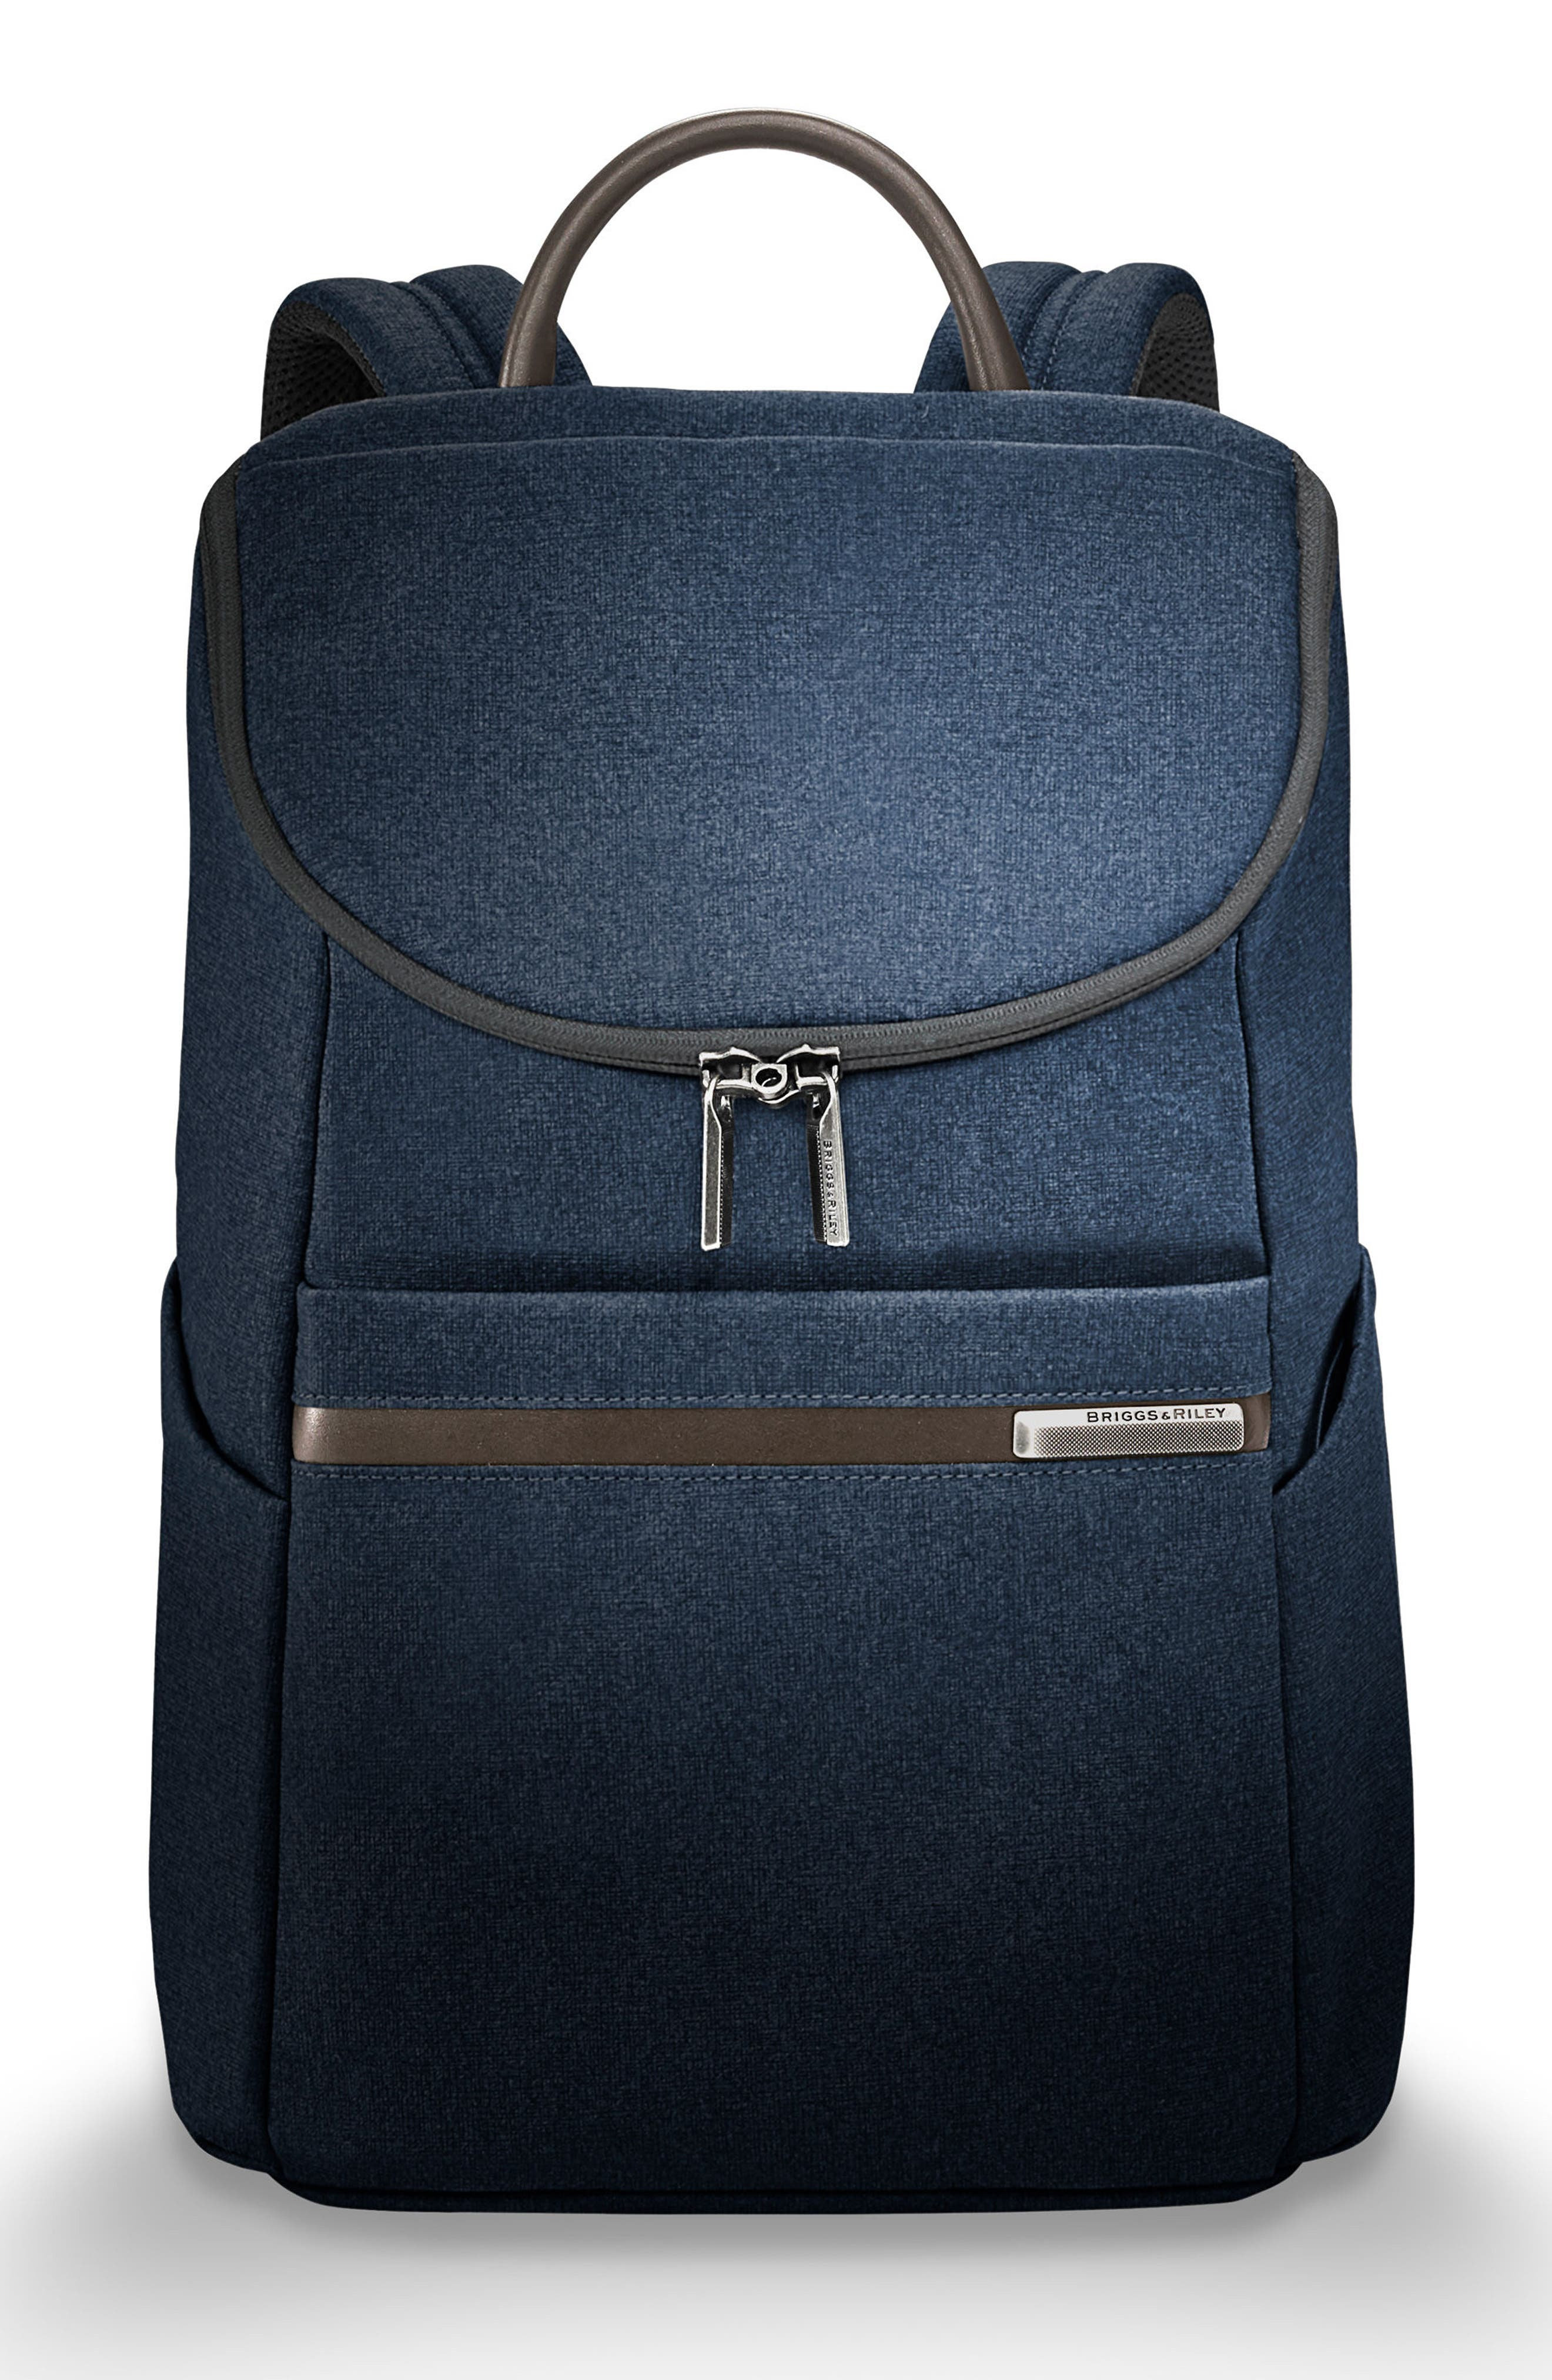 Briggs & Riley Kinzie Street Backpack